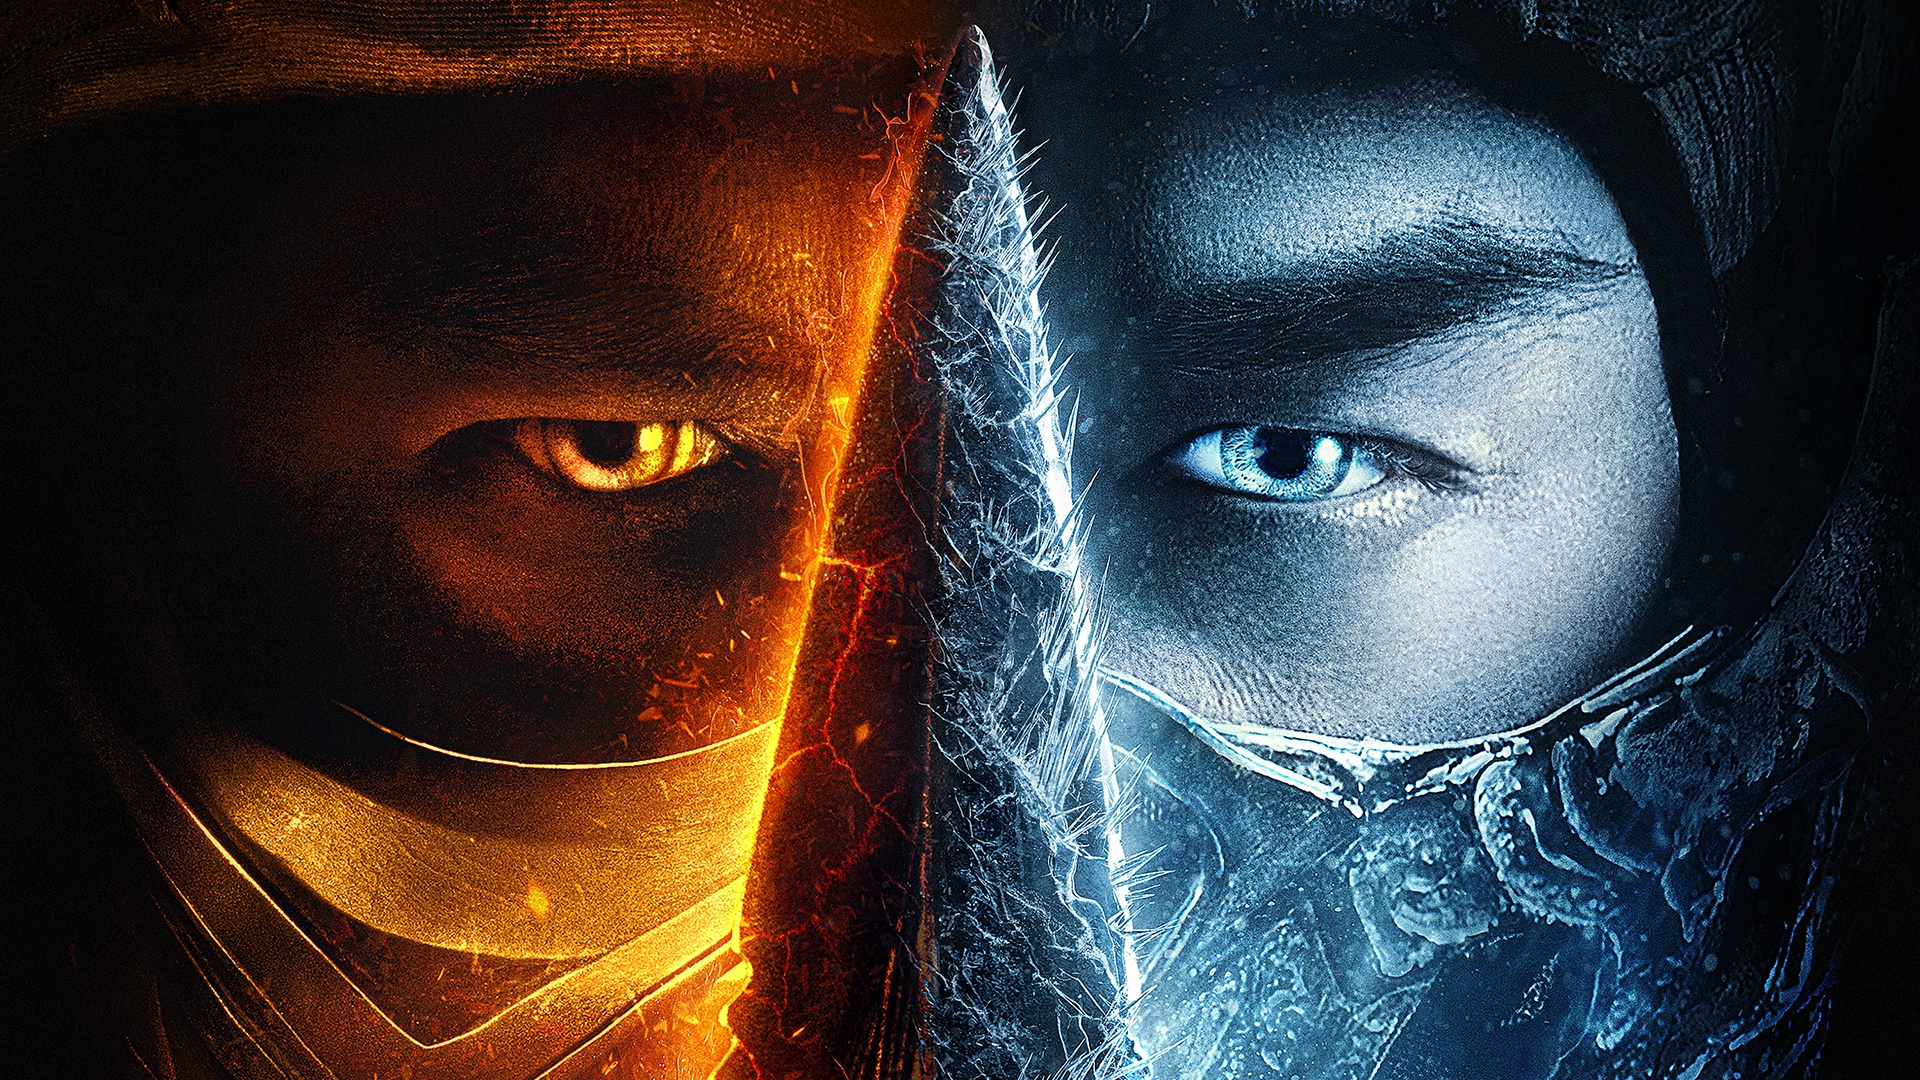 How To Watch Mortal Kombat Online See How To Stream Movie Where You Are Techradar